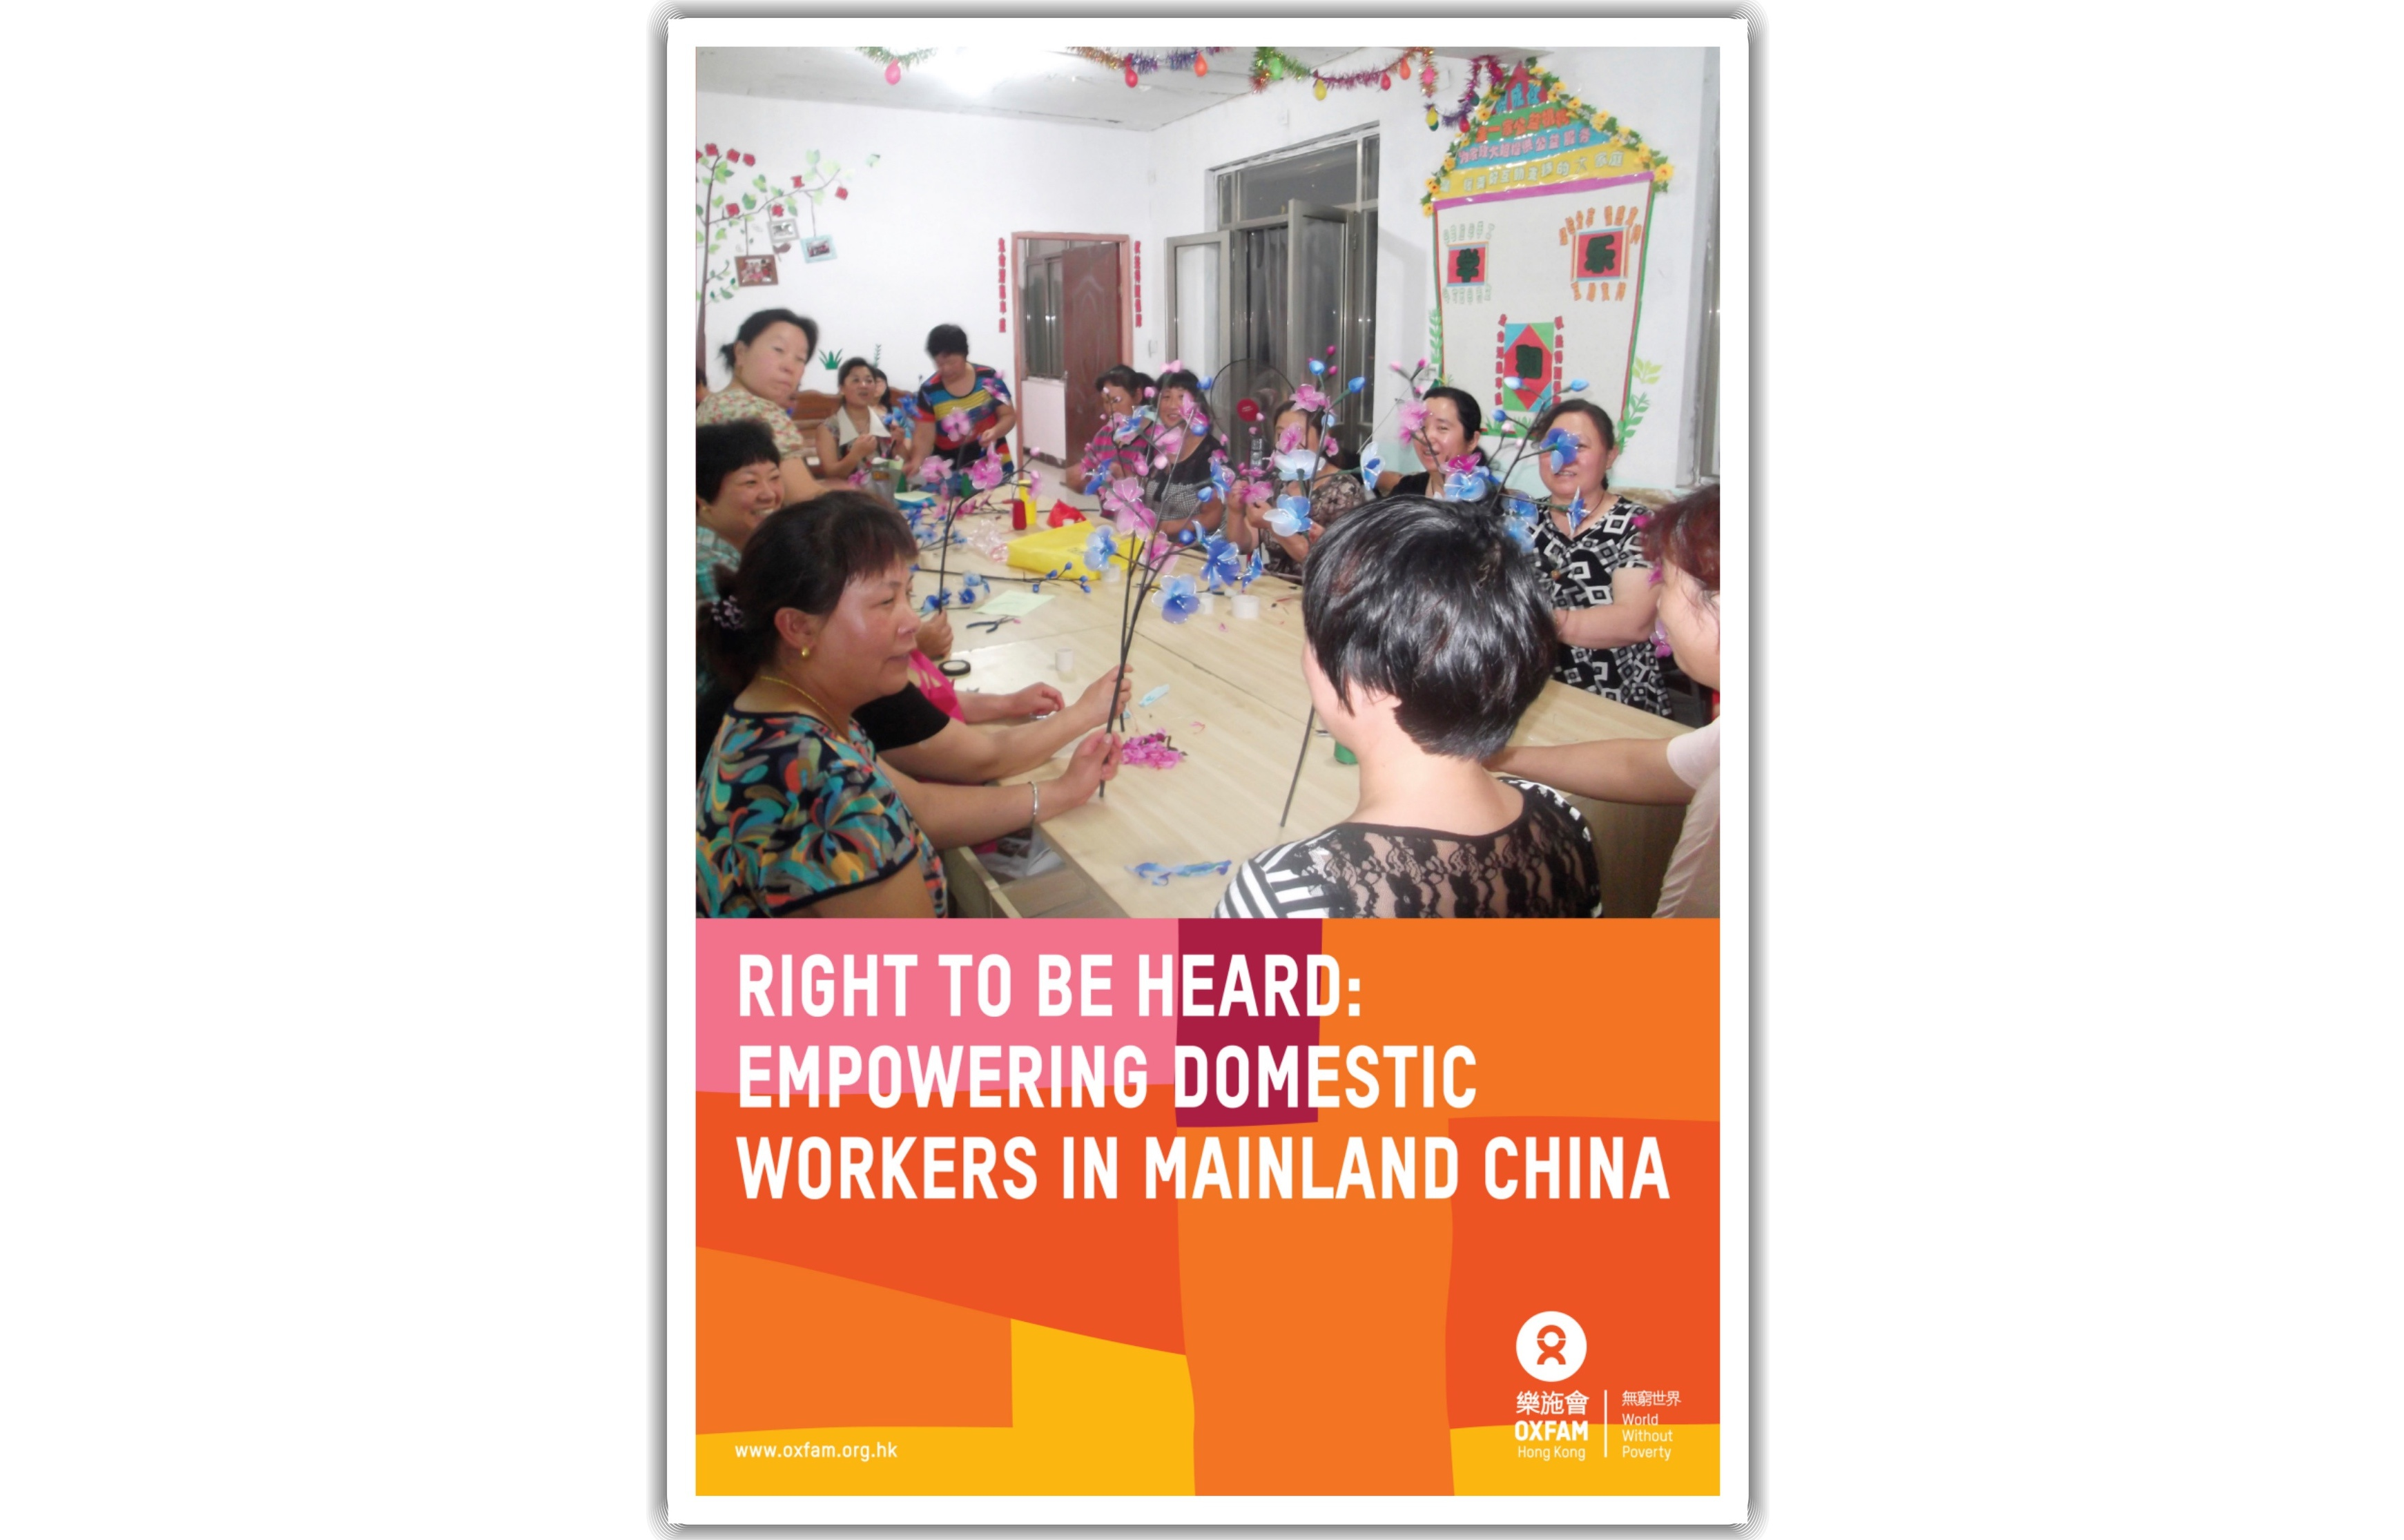 Right to be Heard:Empowering Domestic Workers in Mainland China